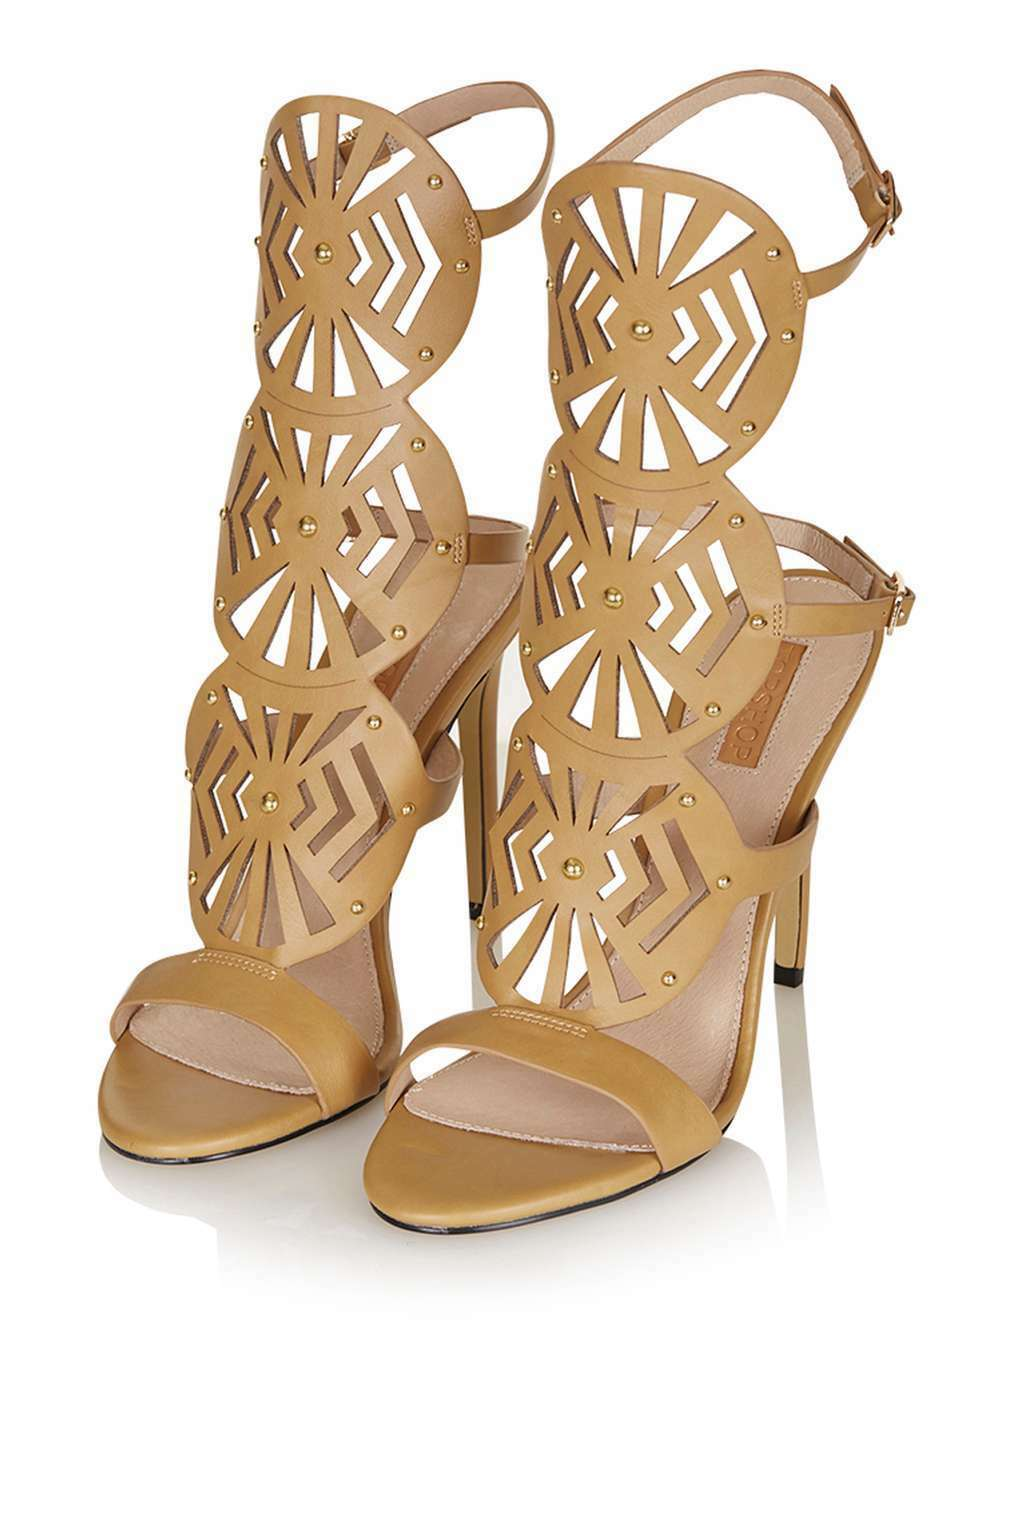 BNWT OUT TOPSHOP RAVELA CAMEL BROWN LAZER CUT OUT BNWT SANDALS HEELS SIZE 5 93ff21